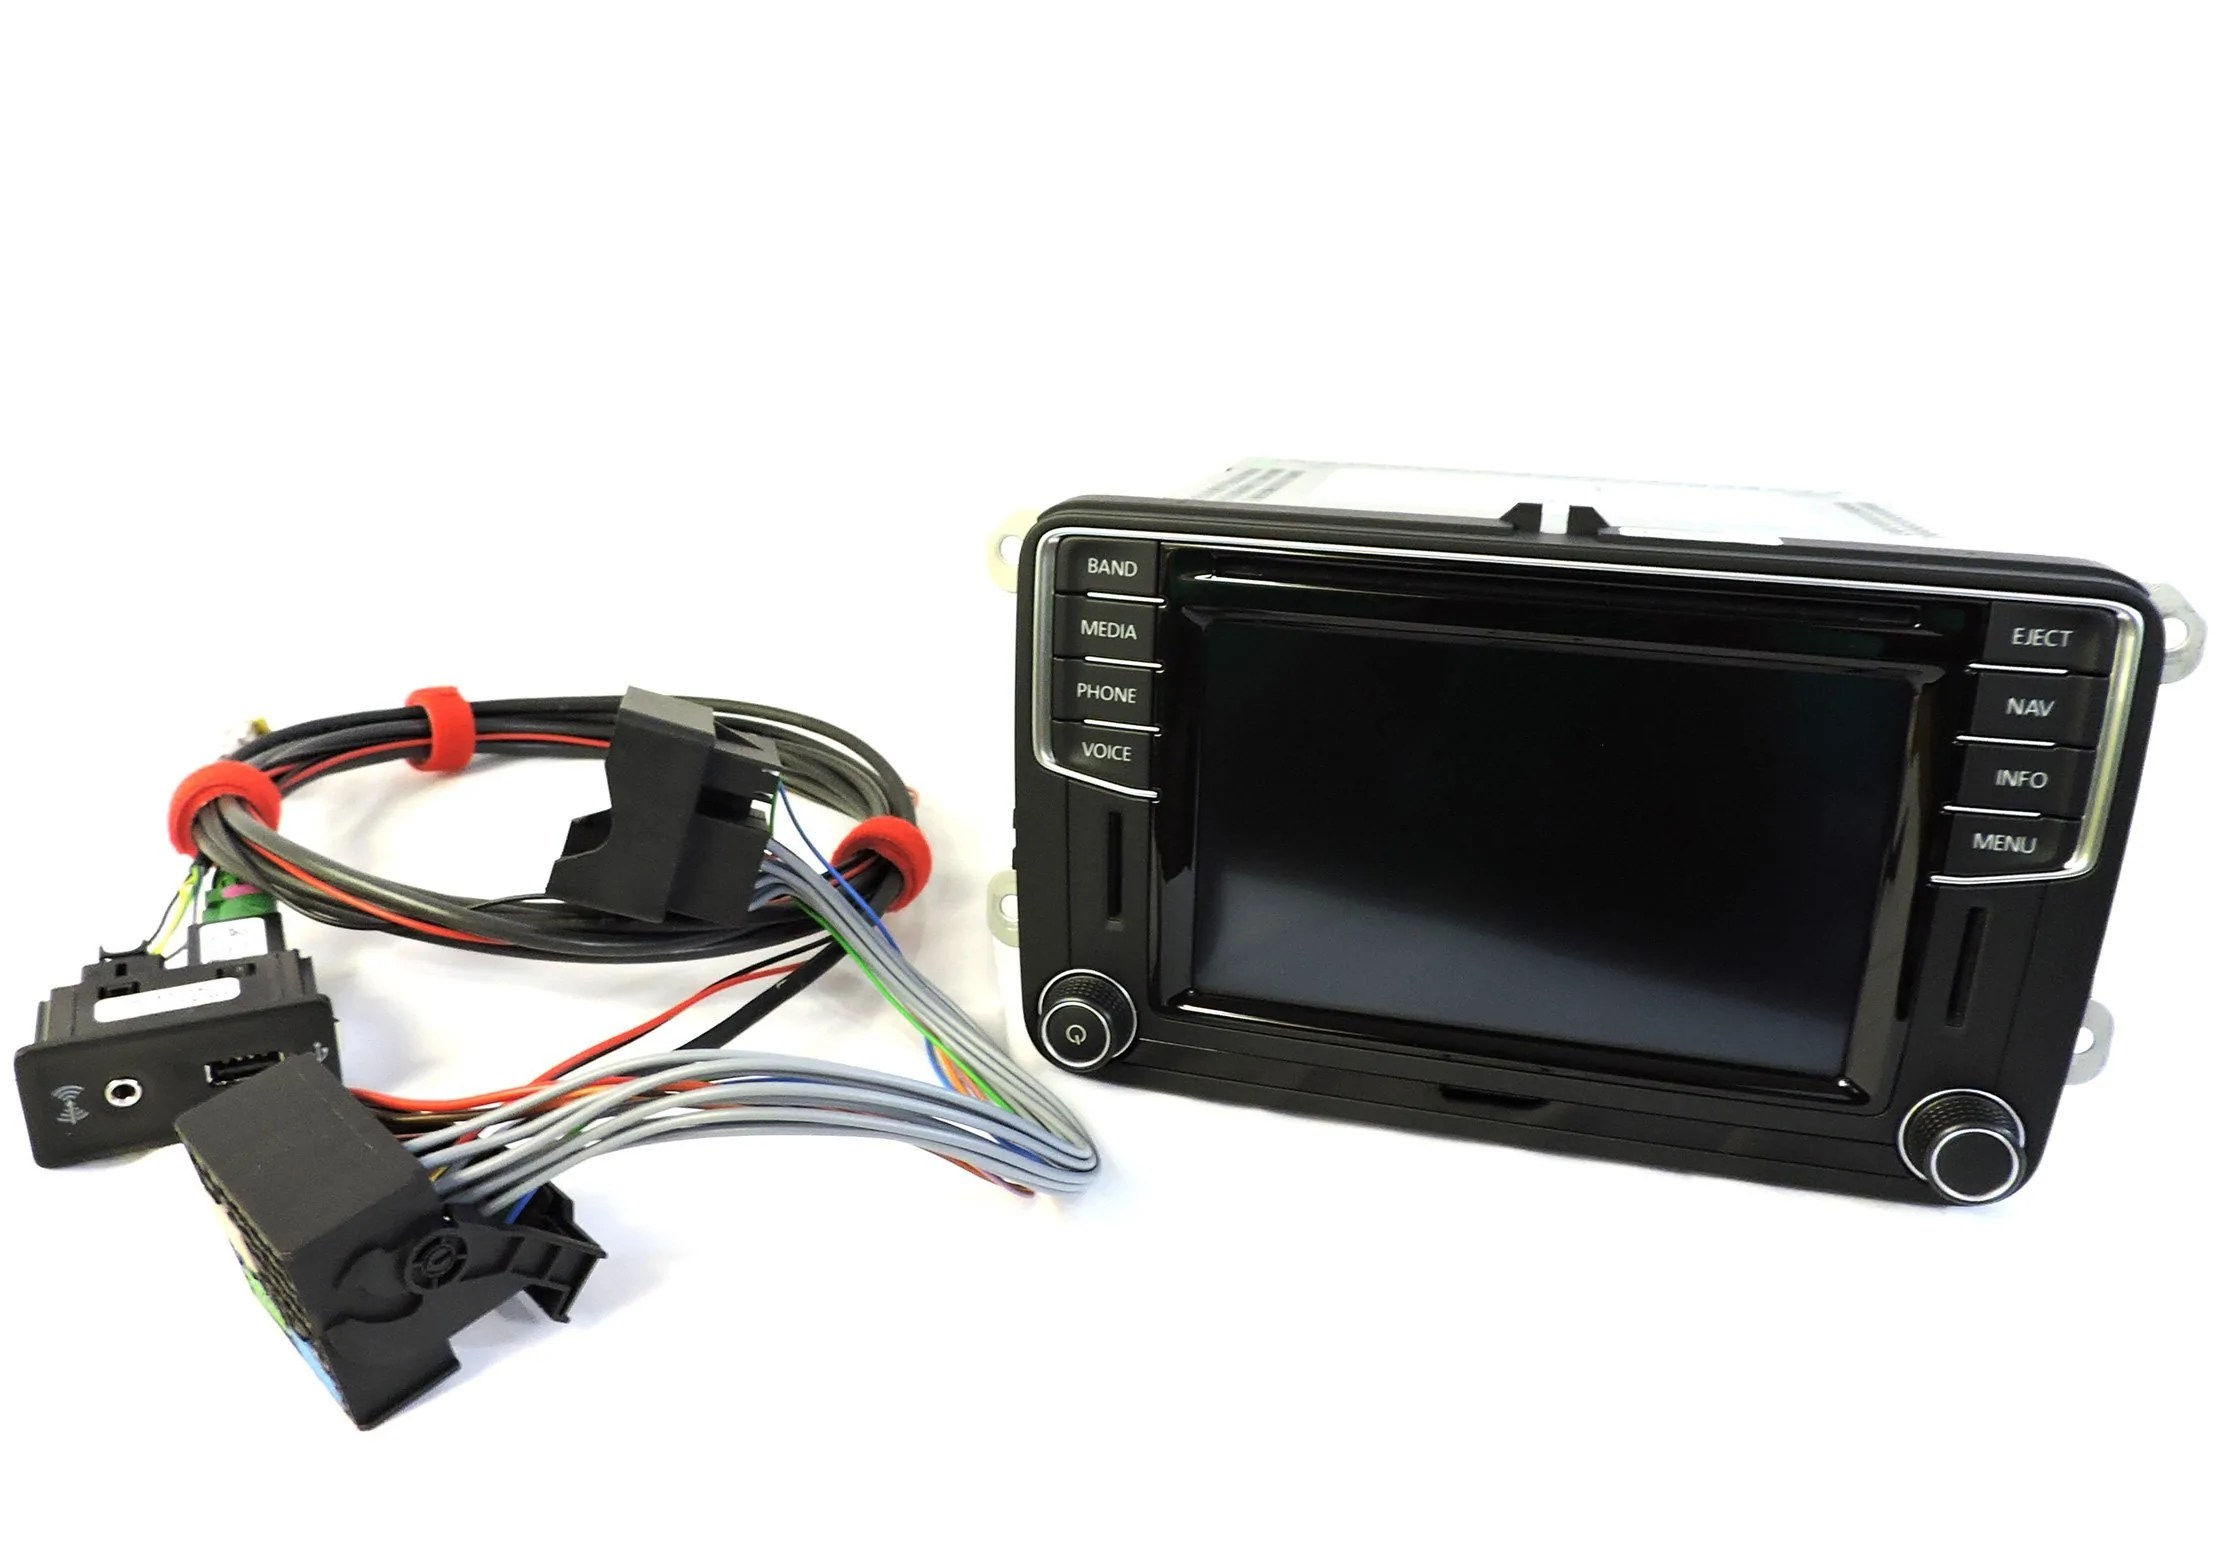 medium resolution of vw discover media plus mib2 pq retrofit kit w app connect eurozone tuning